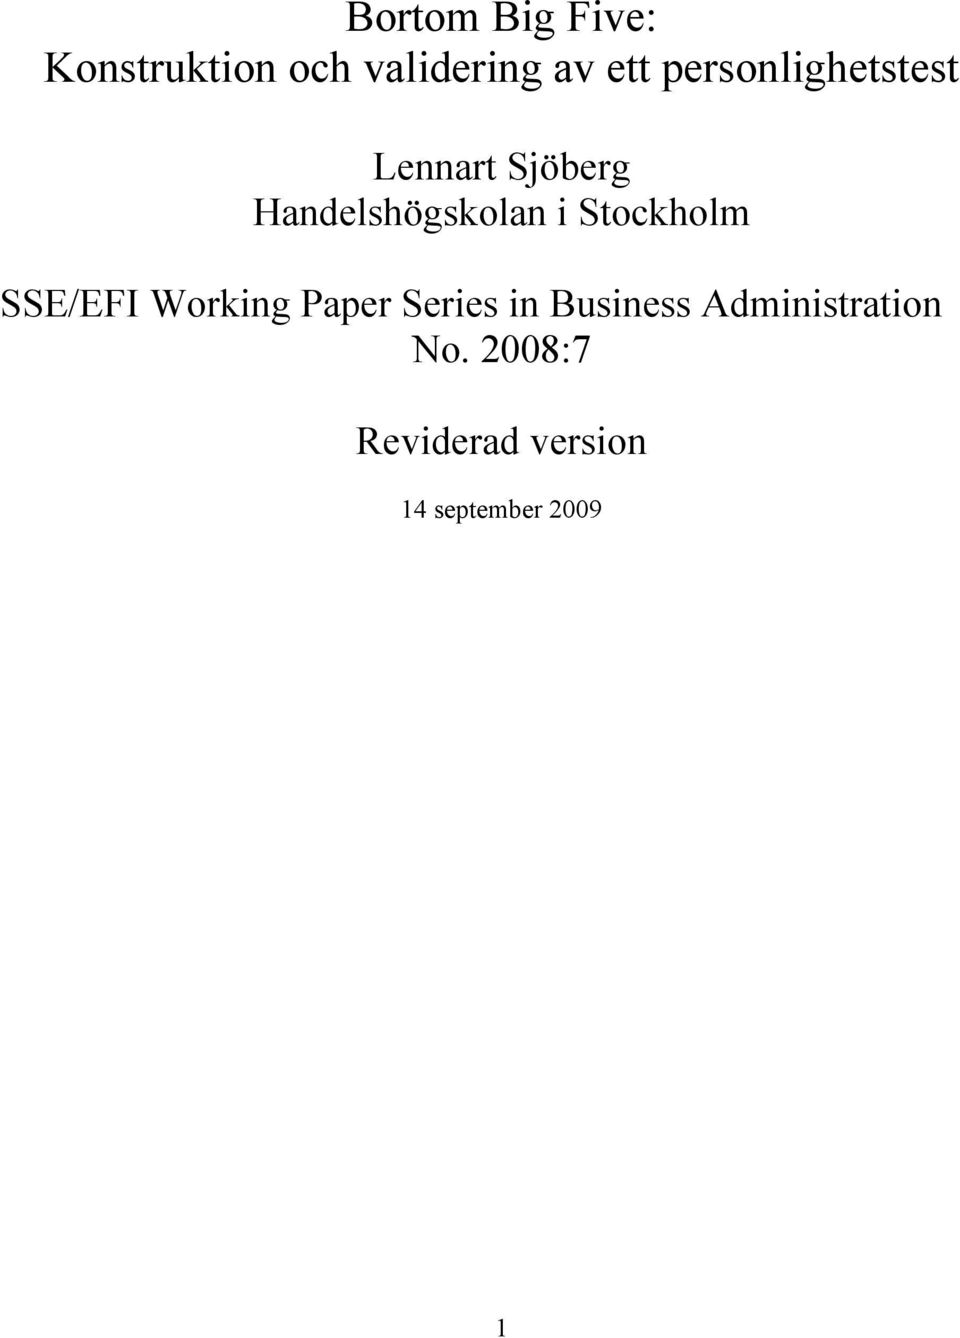 Stockholm SSE/EFI Working Paper Series in Business